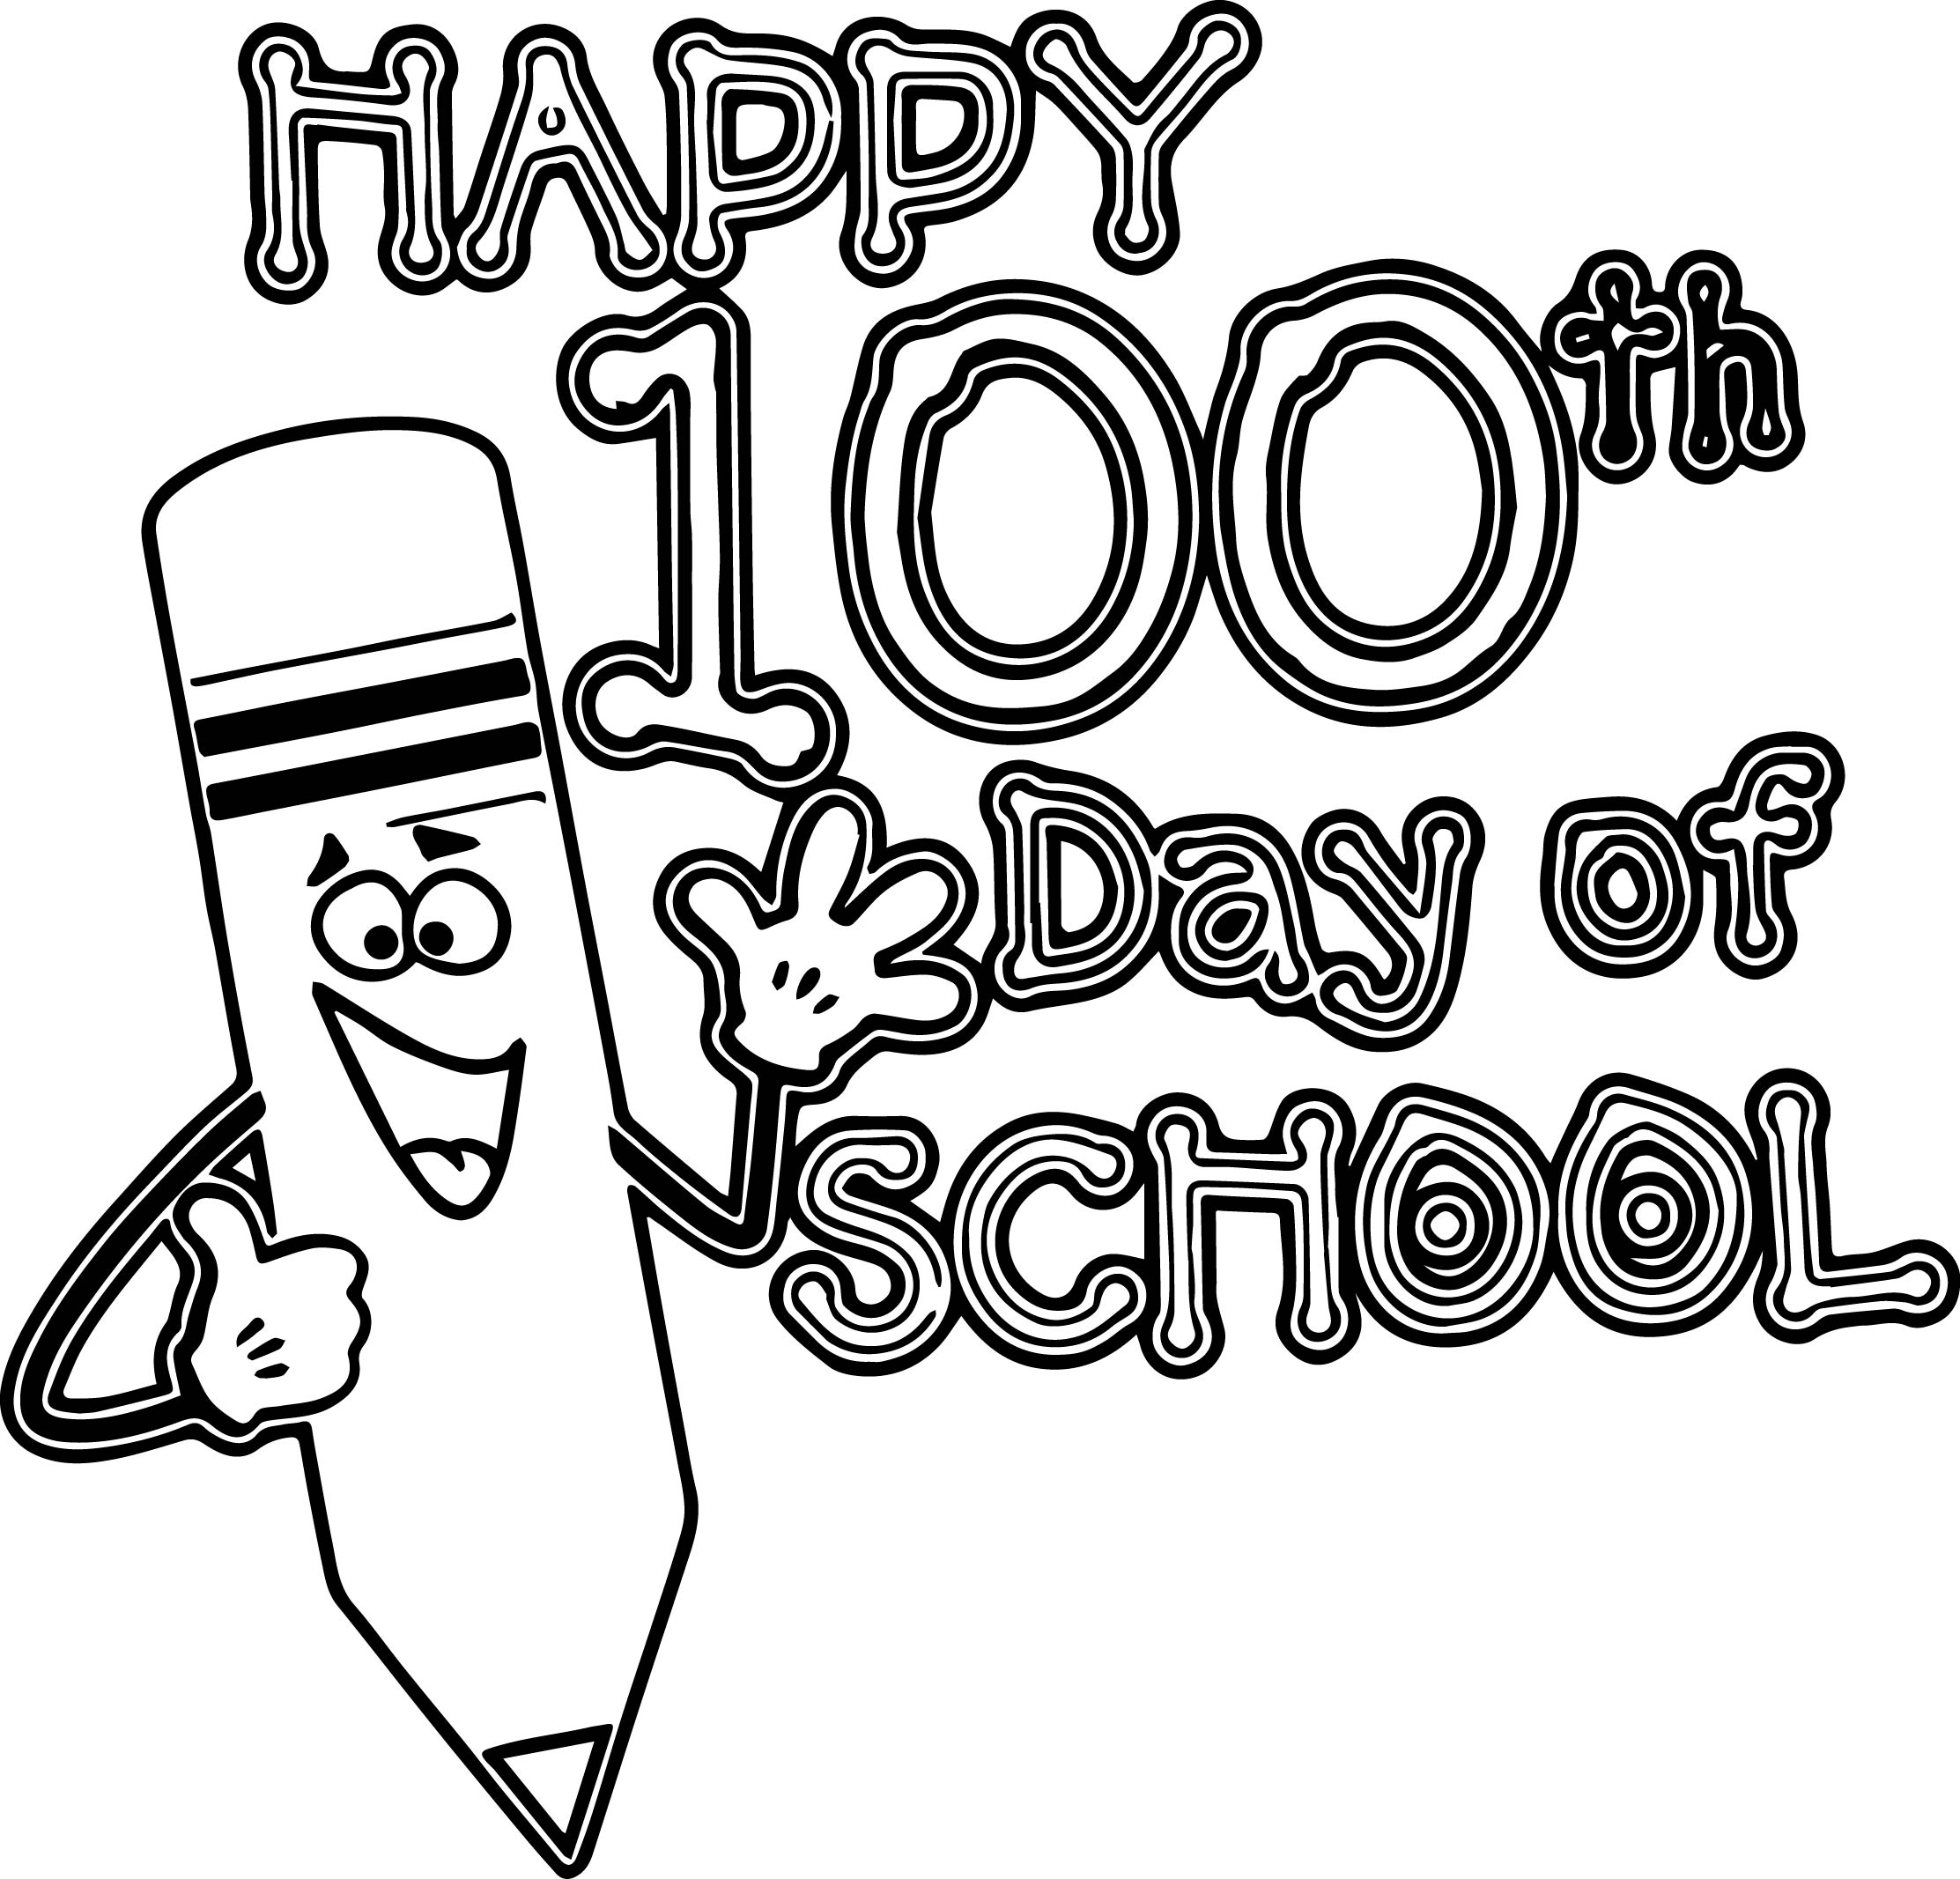 Happy 100th Pencil School Day Coloring Page